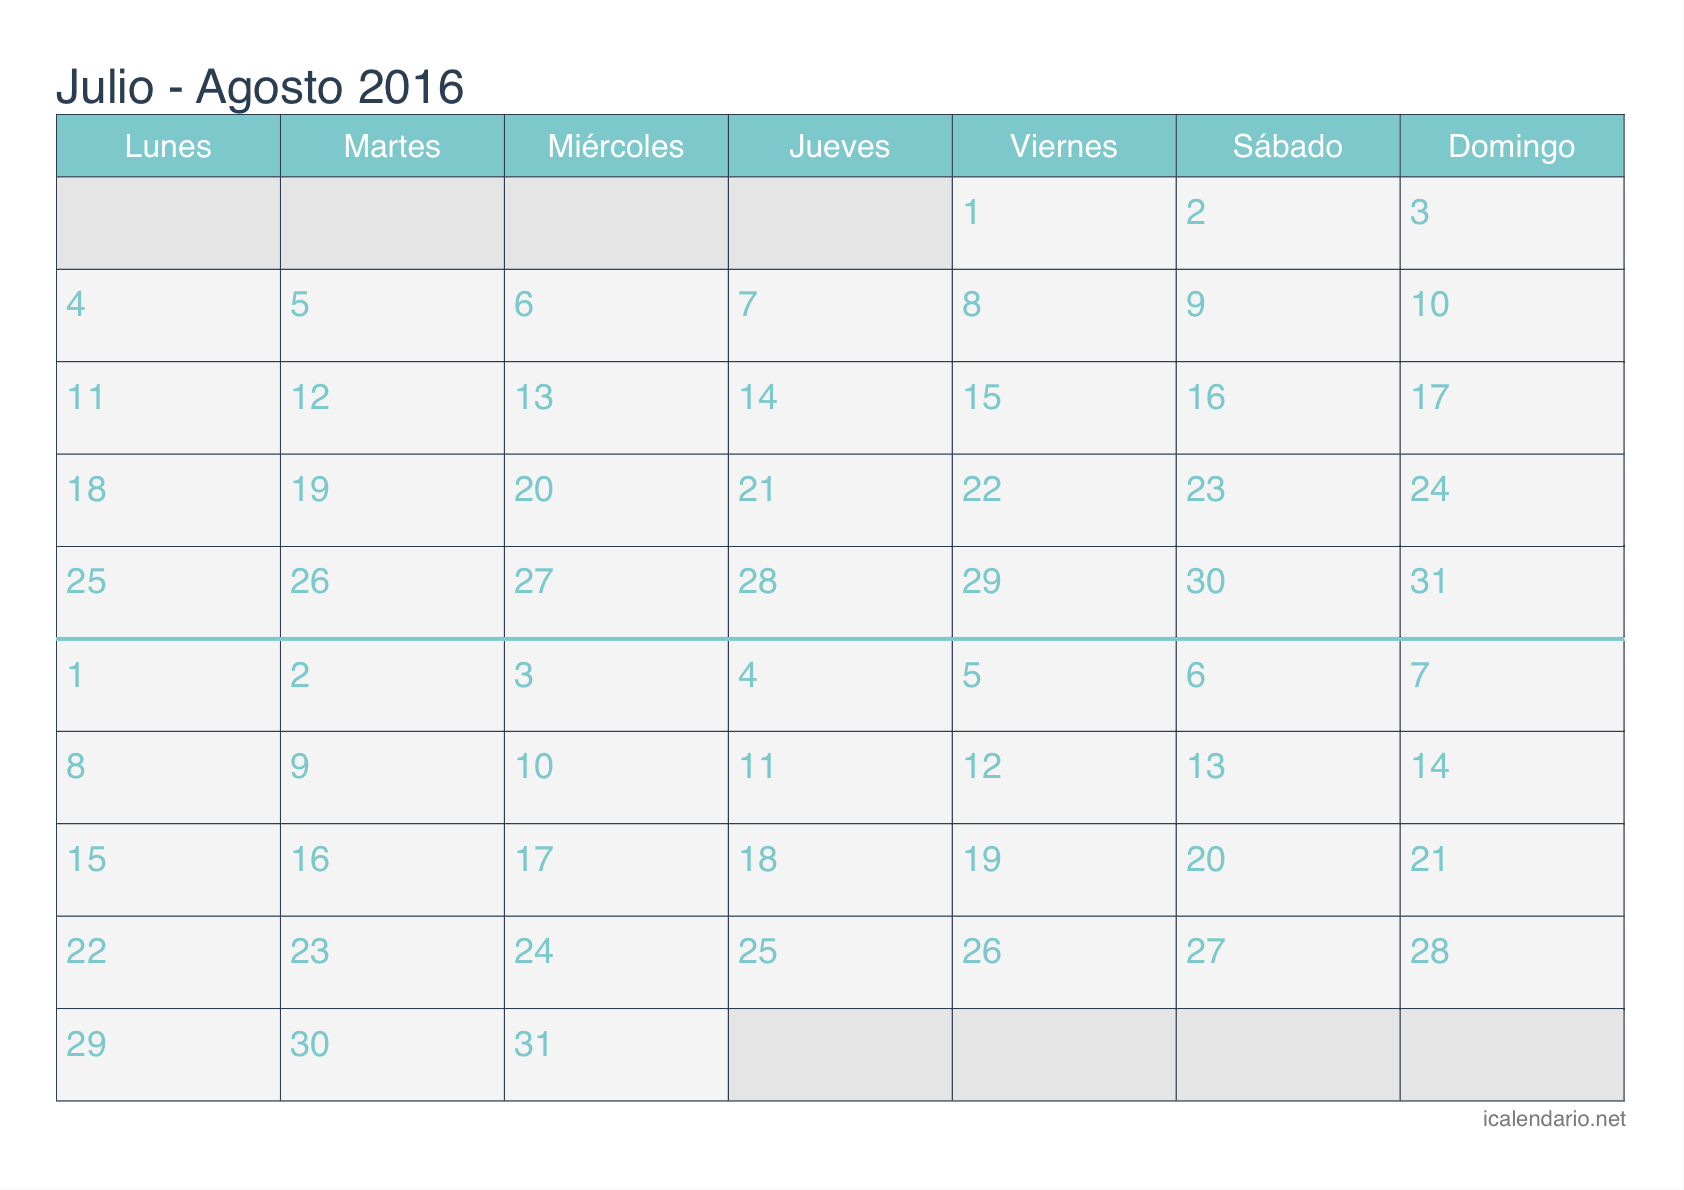 Calendario julio agosto 2016 para imprimir for Calendario junio 2016 para imprimir